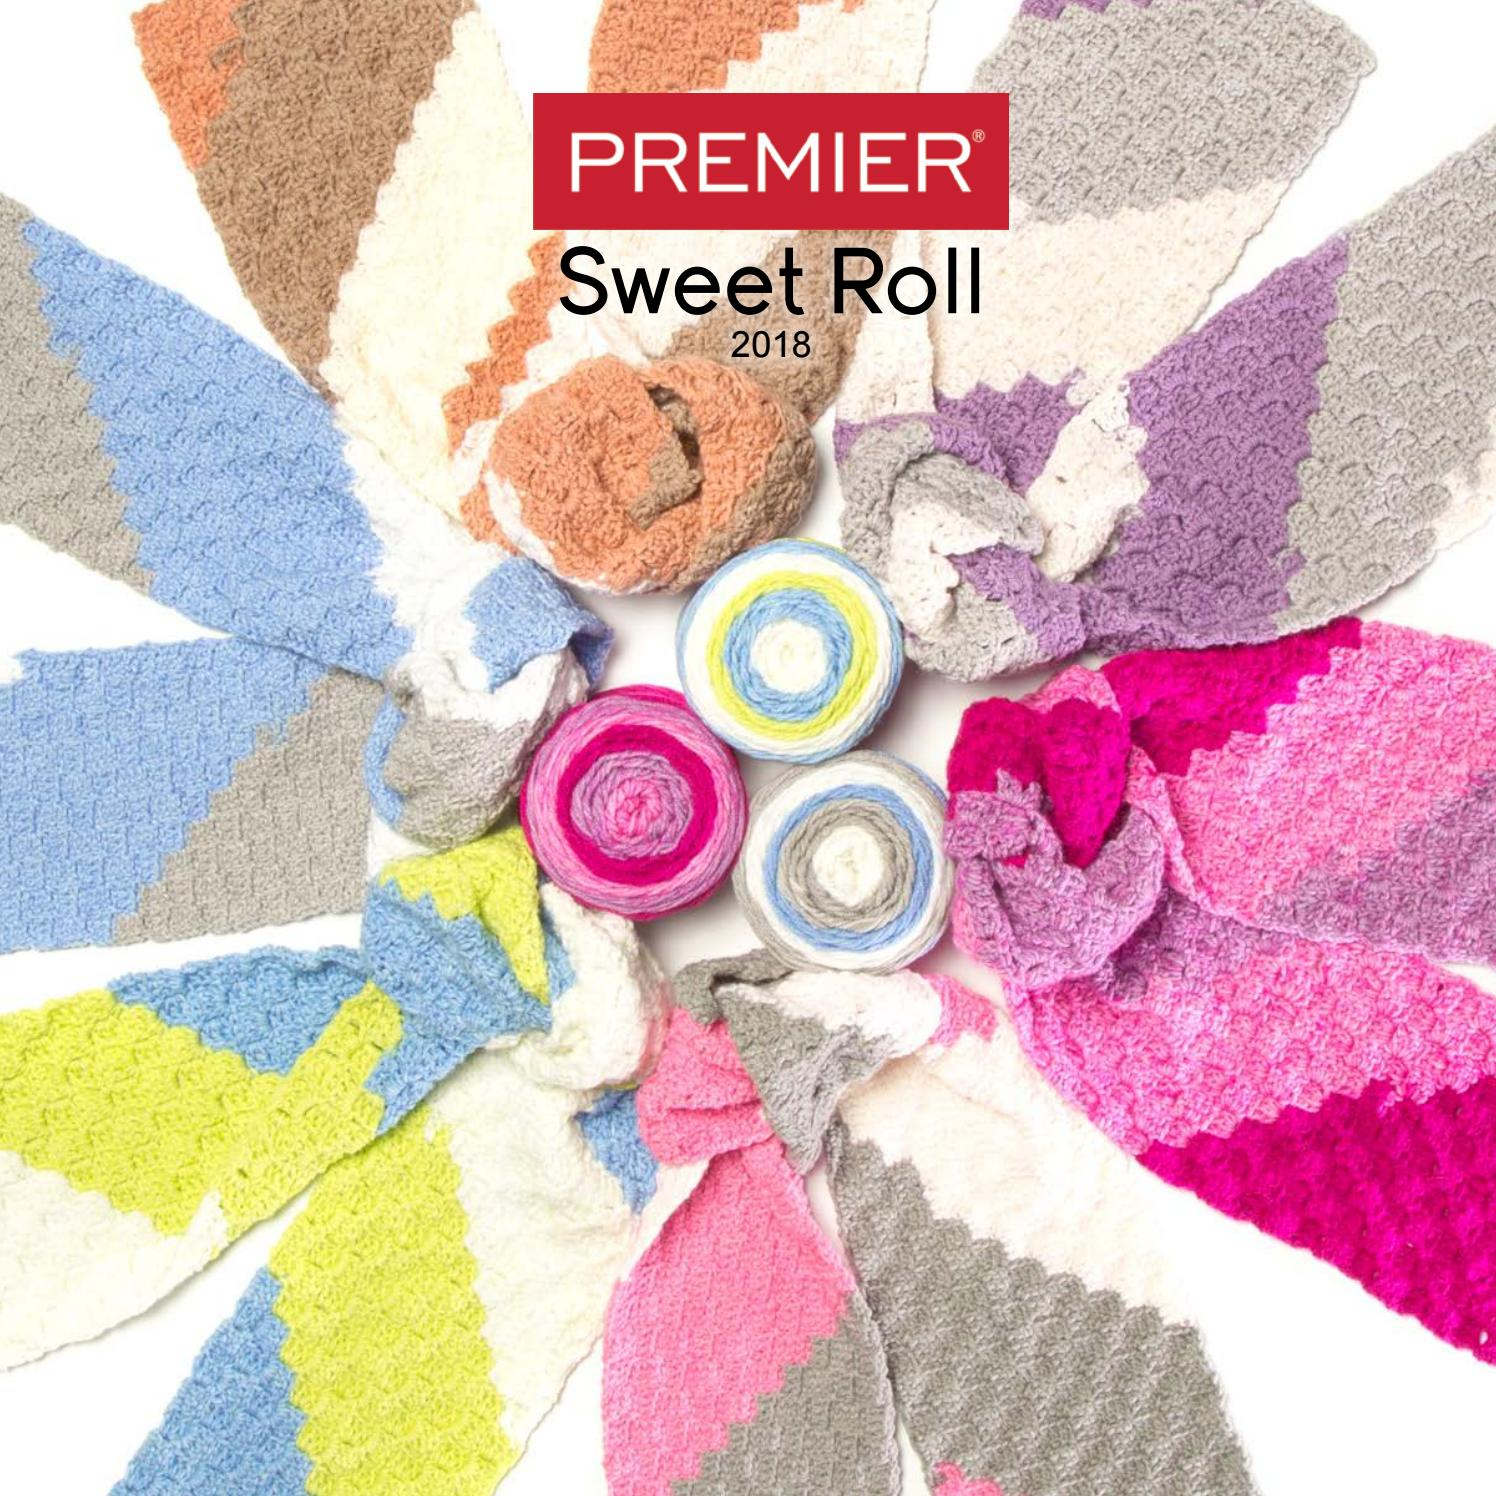 Sweet Roll 2018 Pages By Premier Yarns Issuu